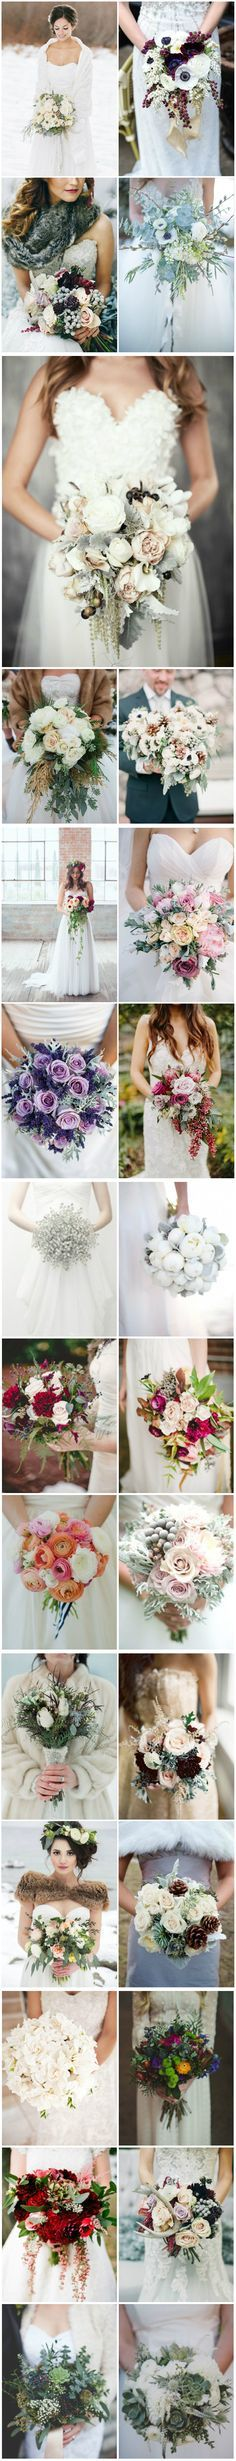 Lovely shades of all kinds of flowers for your winter bouquet www.thebridalbox.co.uk